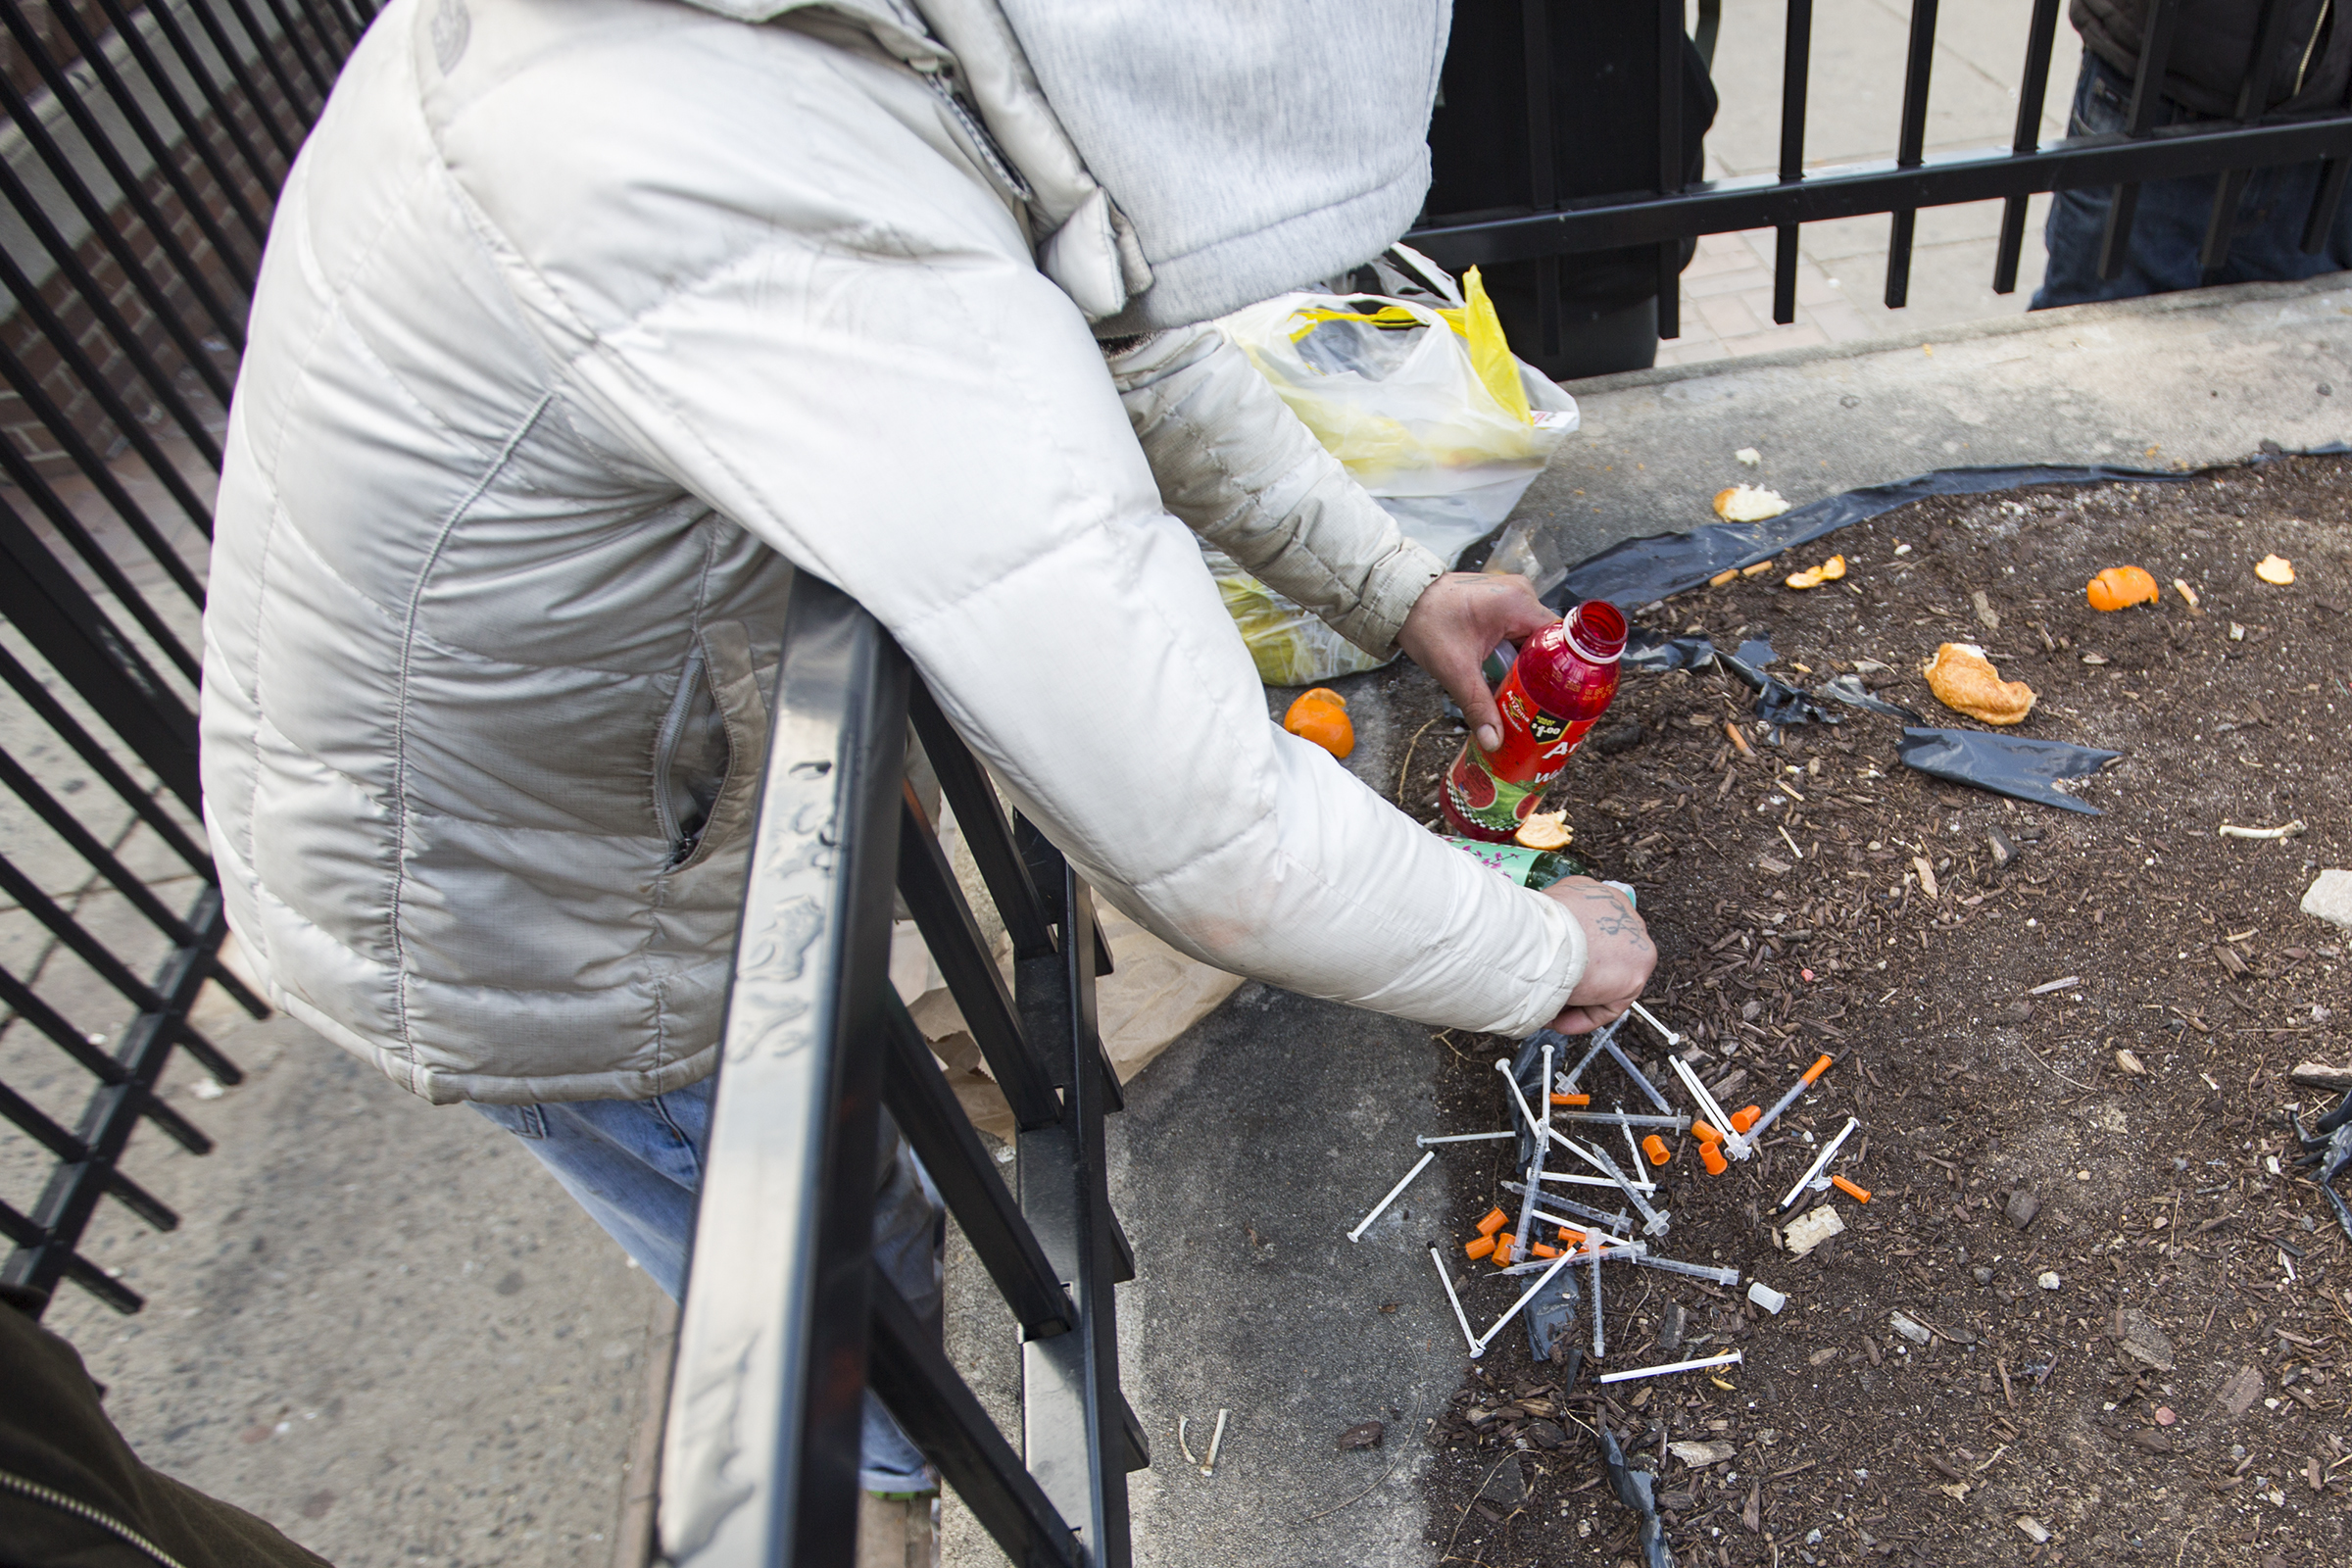 Peter LaRosa showing the needles he collects on the ground and near Camden parks, in order to exchange them for new ones in Philadelphia.